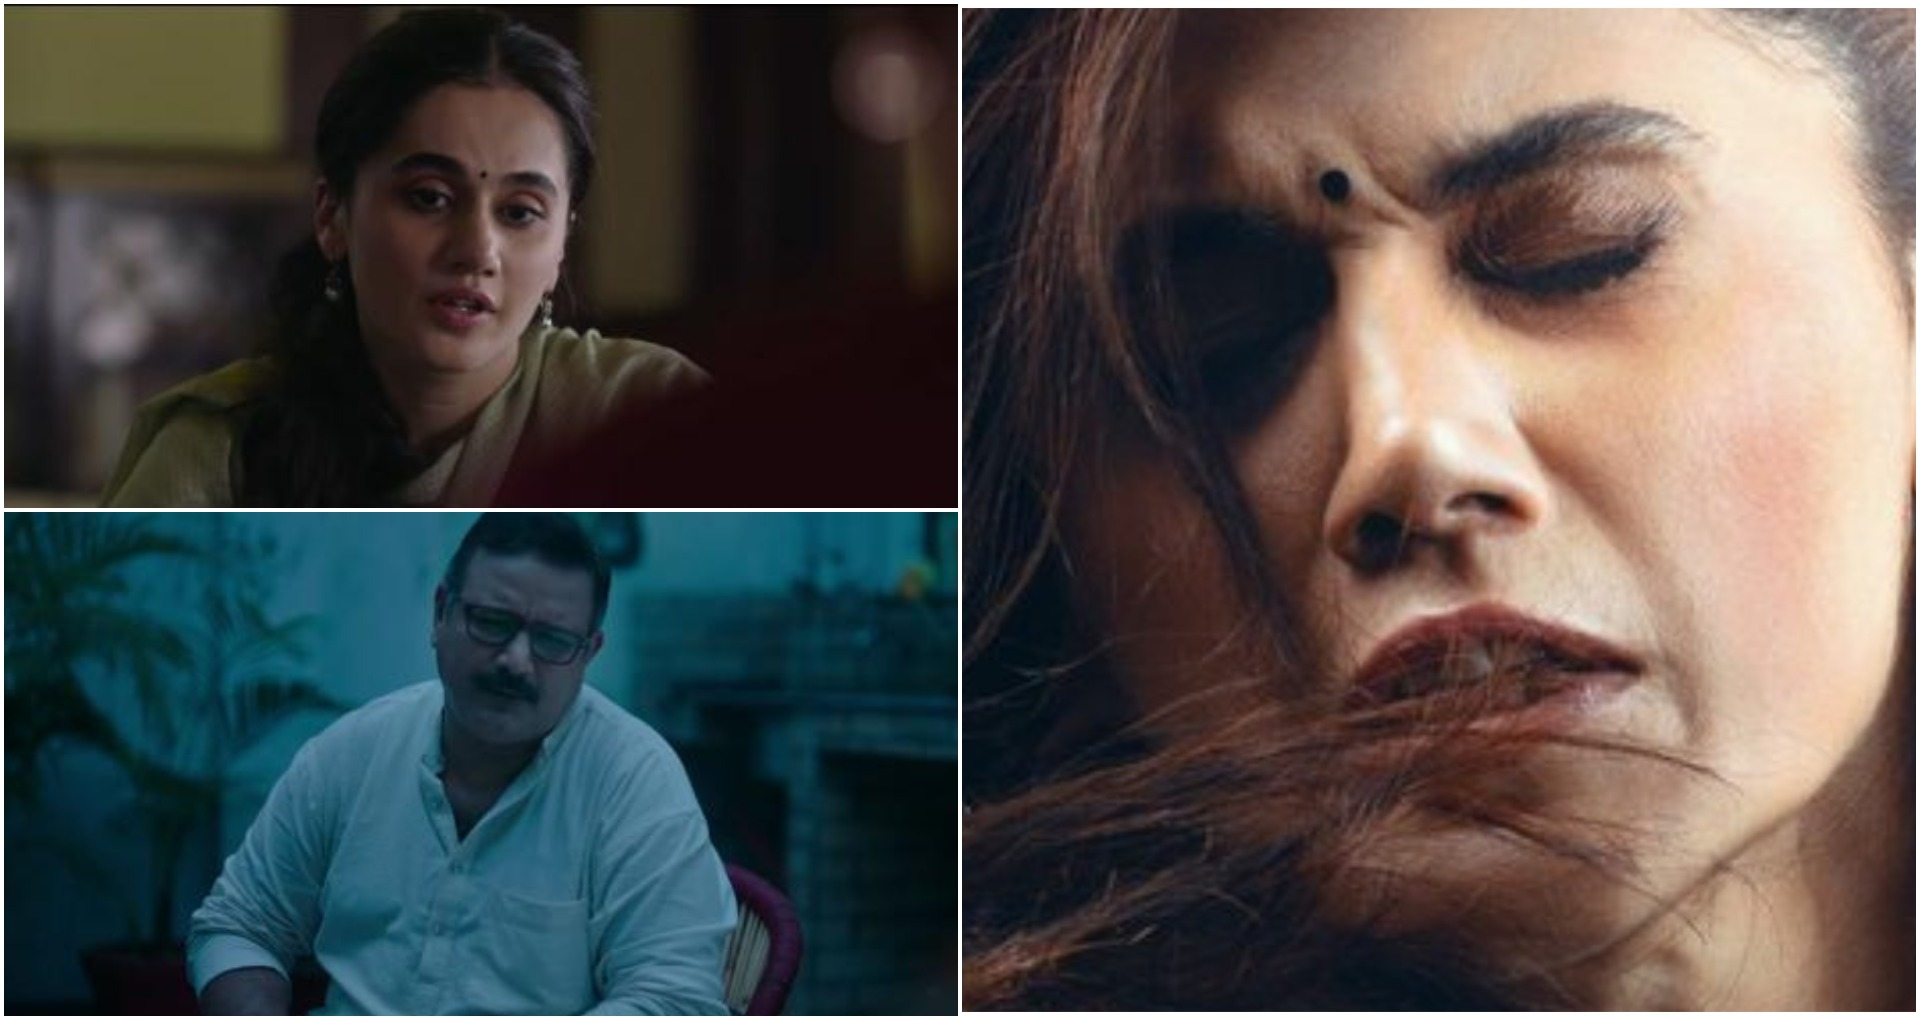 Thappad Box Office Collection Day 1: Taapsee Pannu's film 'Thappad' made a box office debut on day one